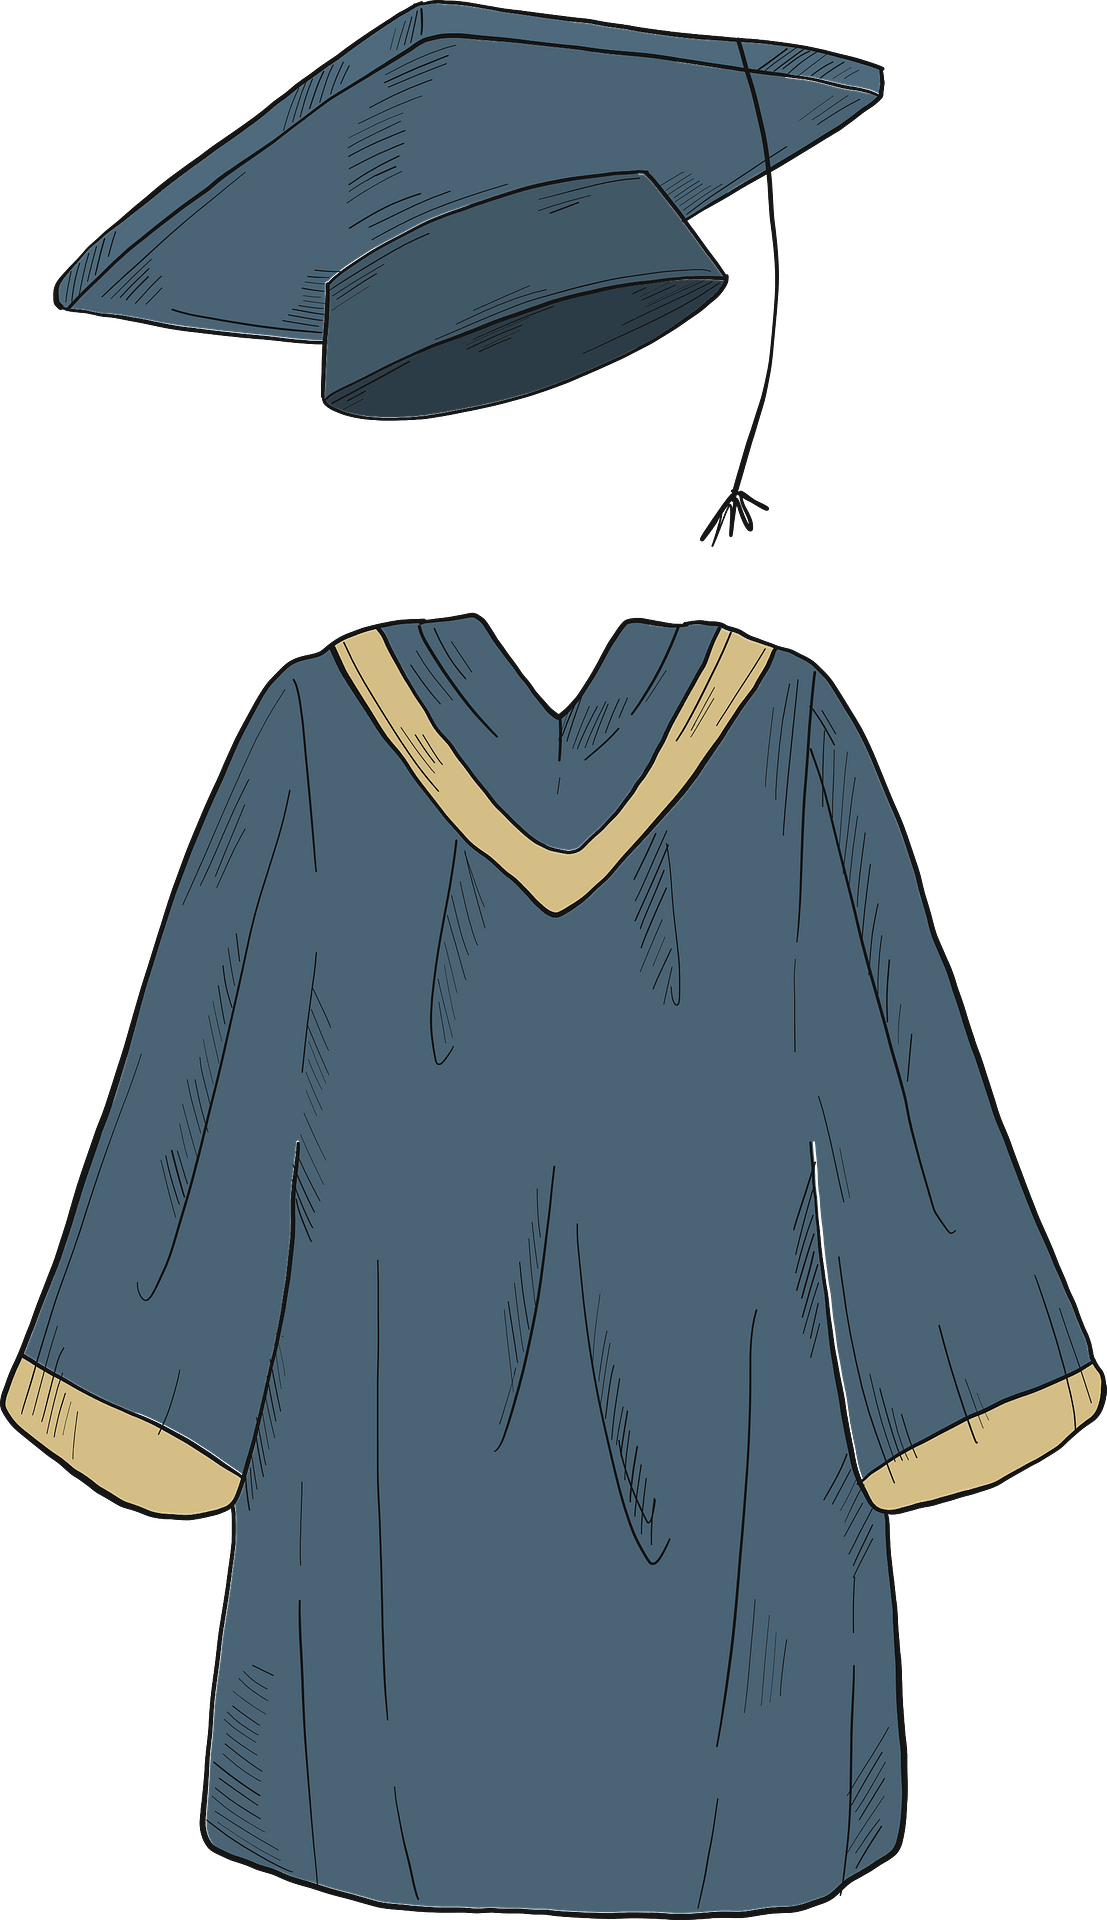 Cap and gown clipart. Free download transparent .PNG | Creazilla